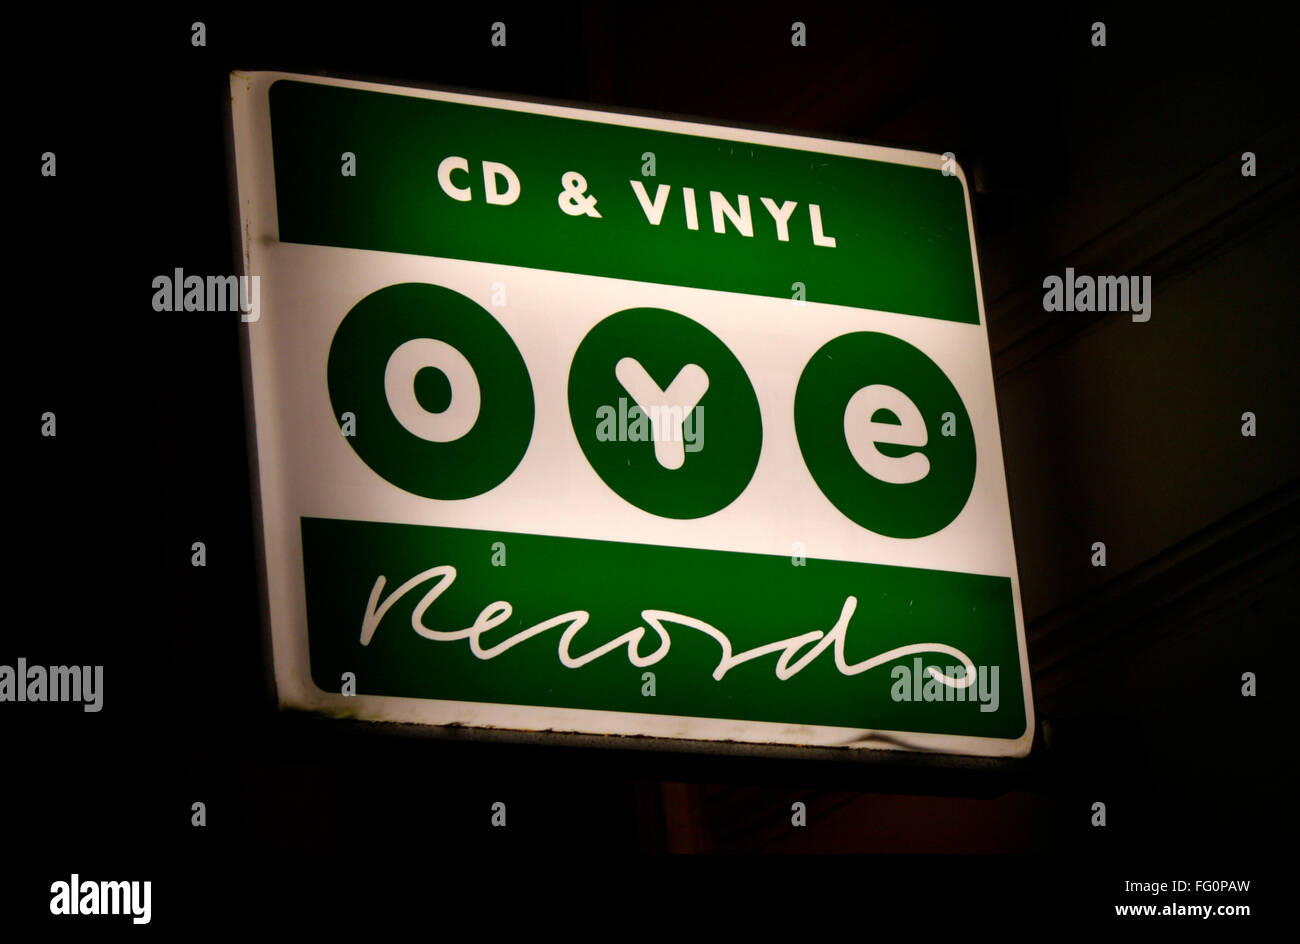 Markenname: 'Oye Records', Berlin. - Stock Image